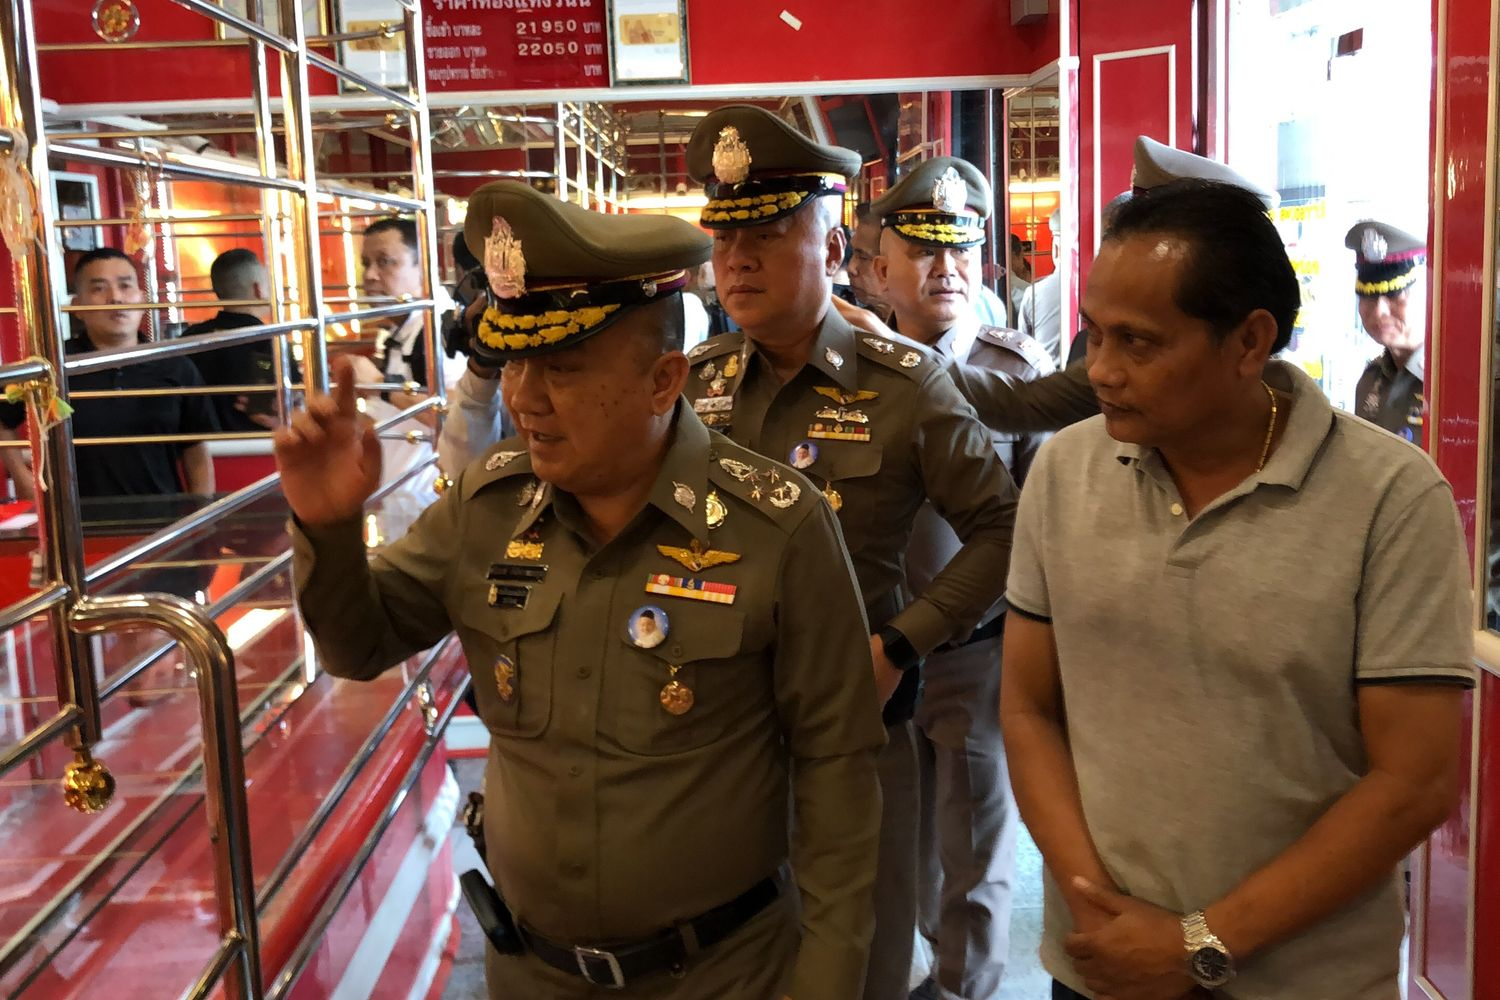 Deputy police chief Gen Srivara Ransibhramanakul (left) on Tuesday visits the gold shop that was robbed on Aug 24. The robbers made off with alsomost 50 million baht worth of gold. (Photo supplied by Assawin Pakkawan)